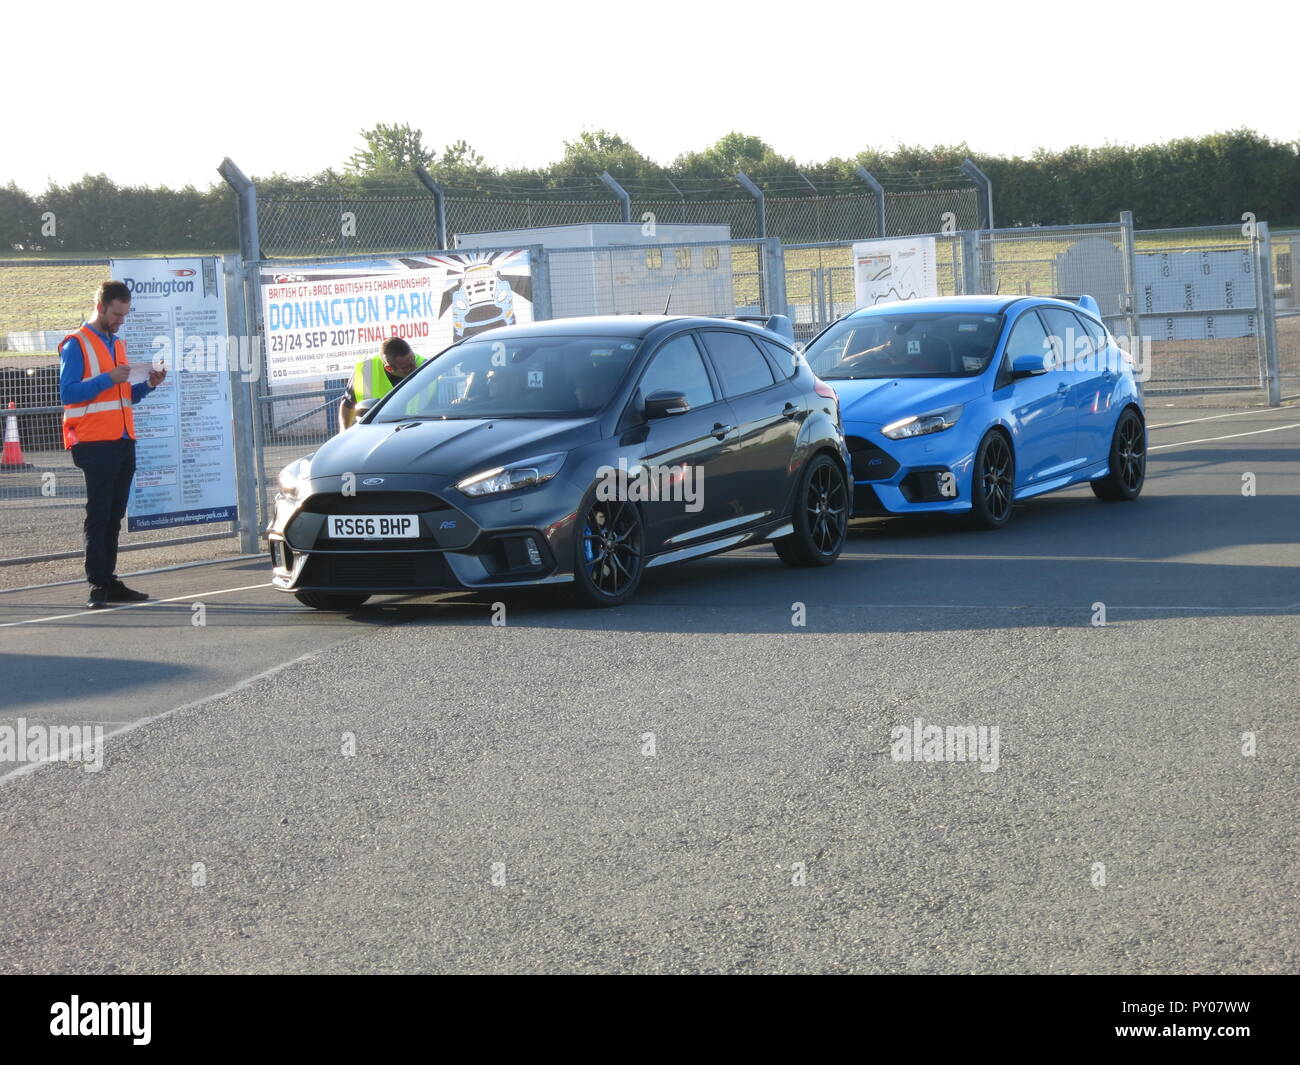 Ford Focus Rs Mk3 Shown At Donnington Park Race Circuit At